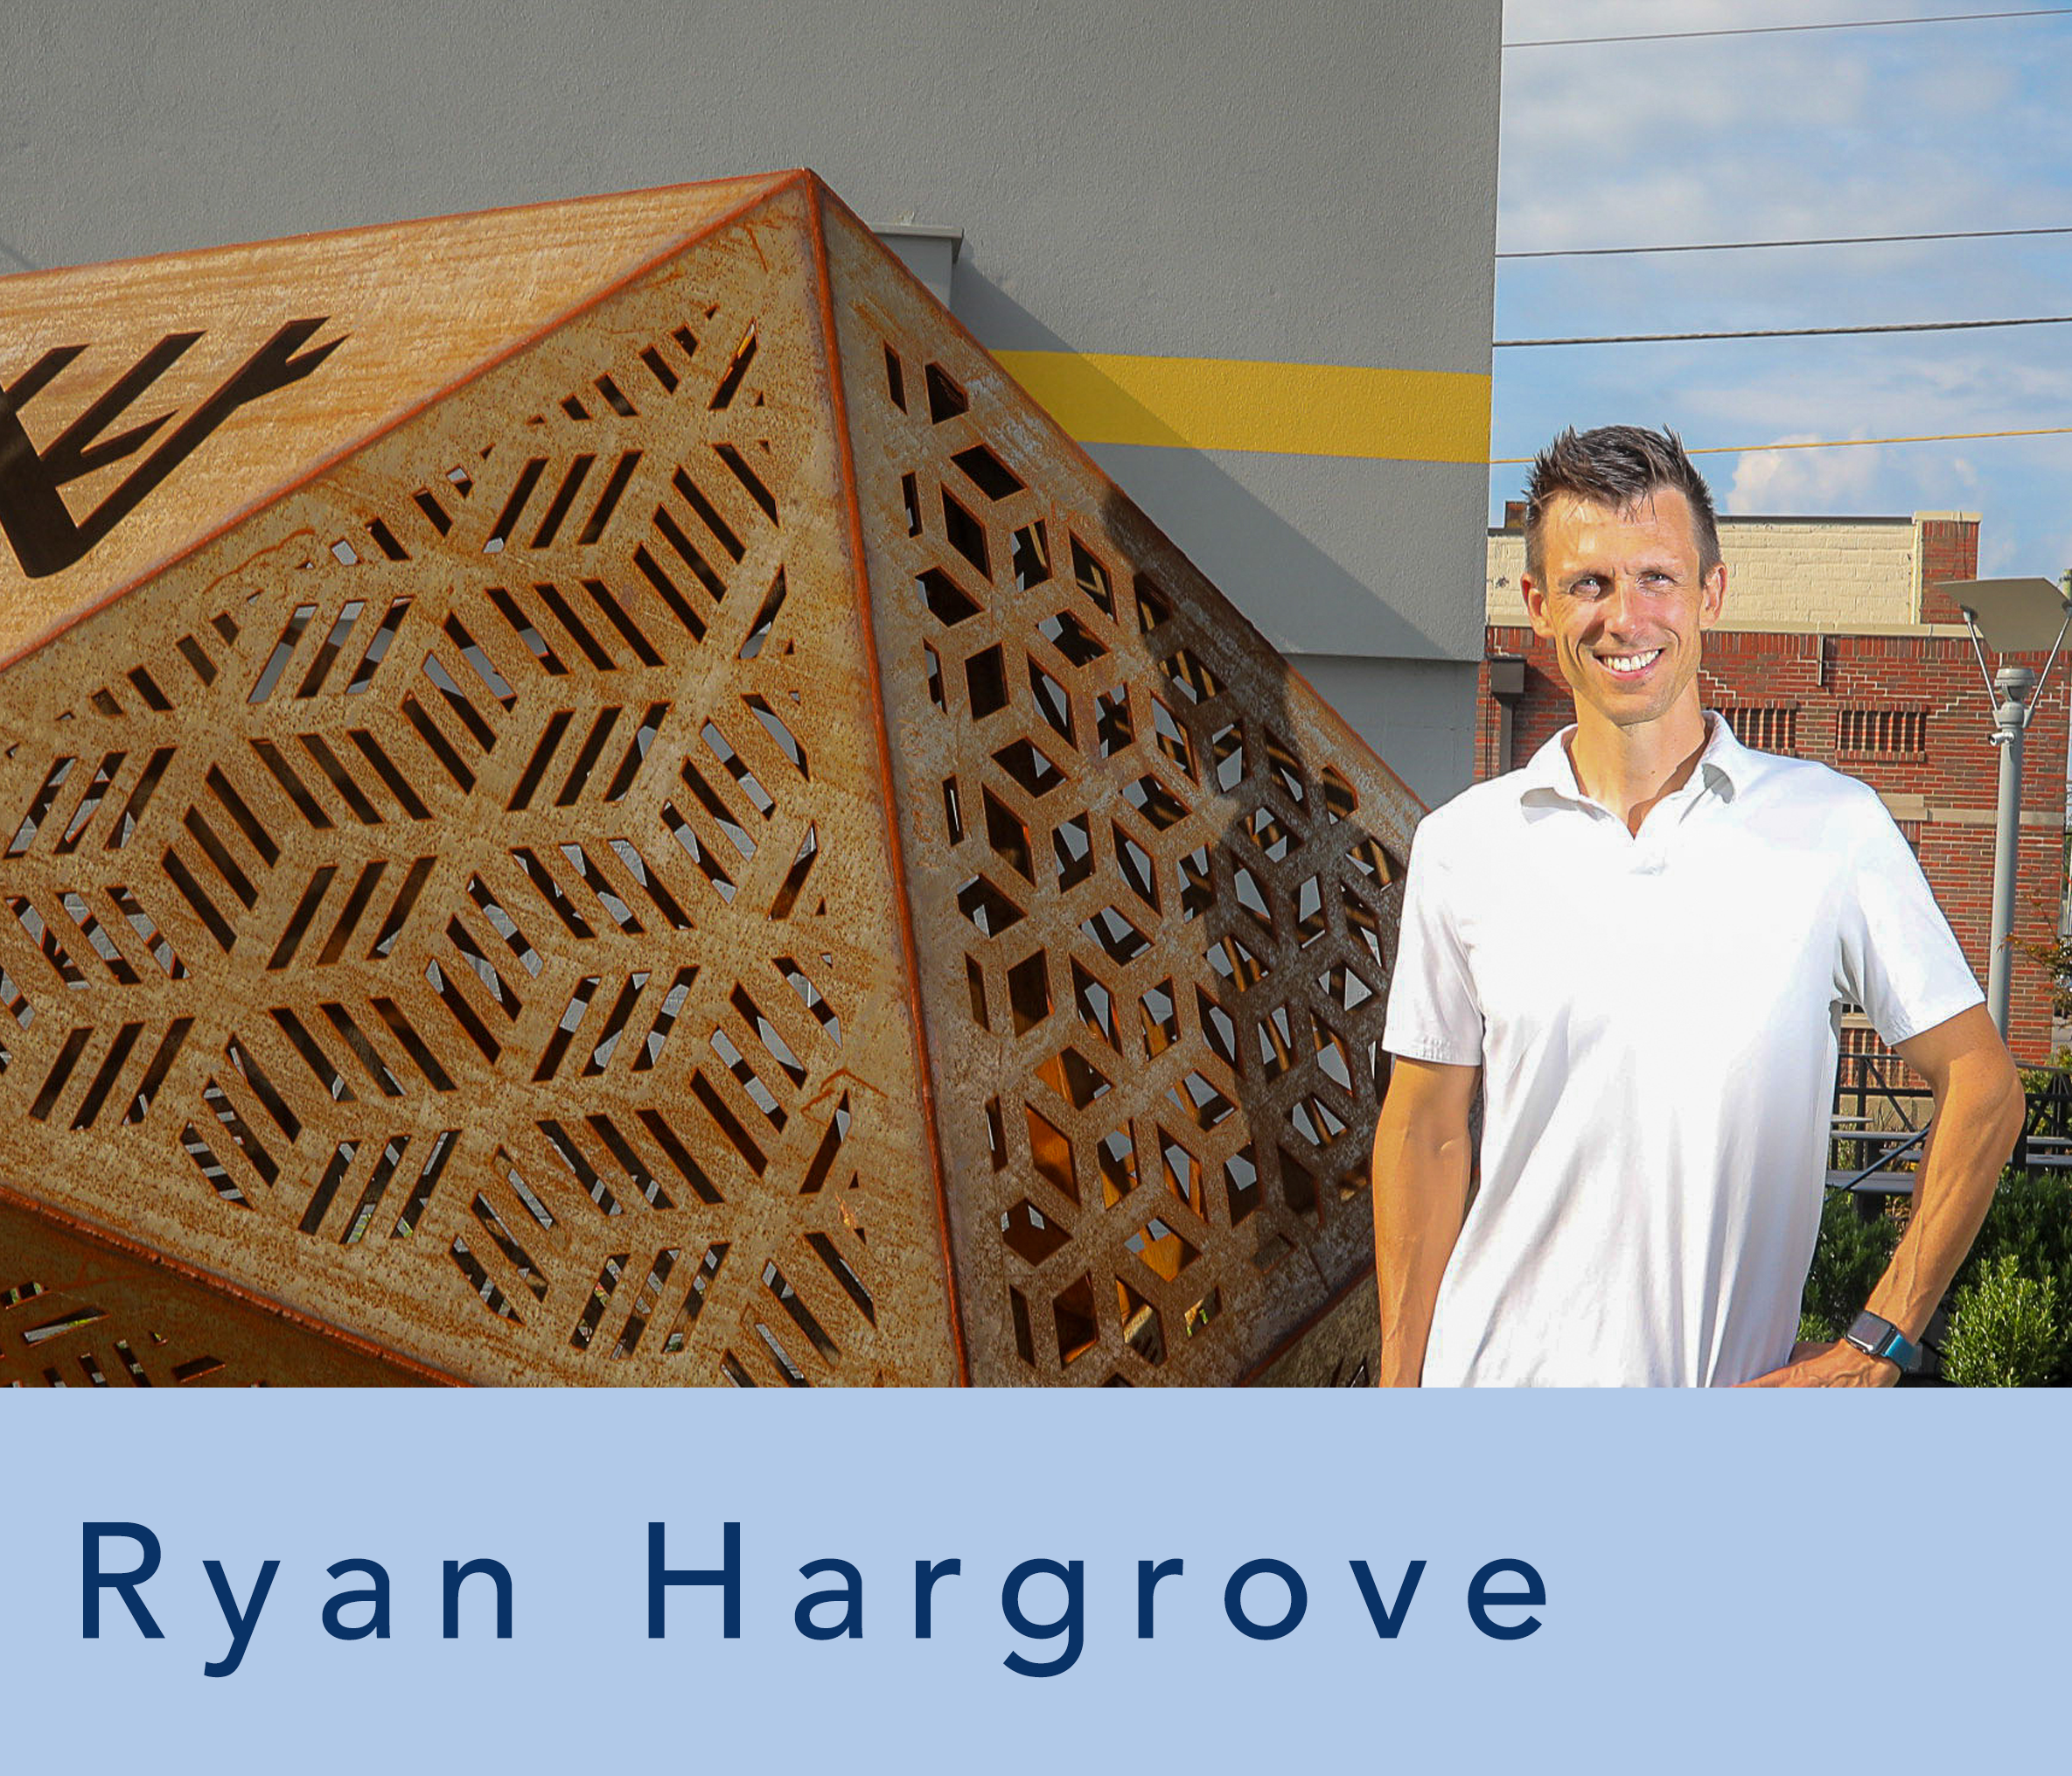 ryan hargrove standing by metal sculpture